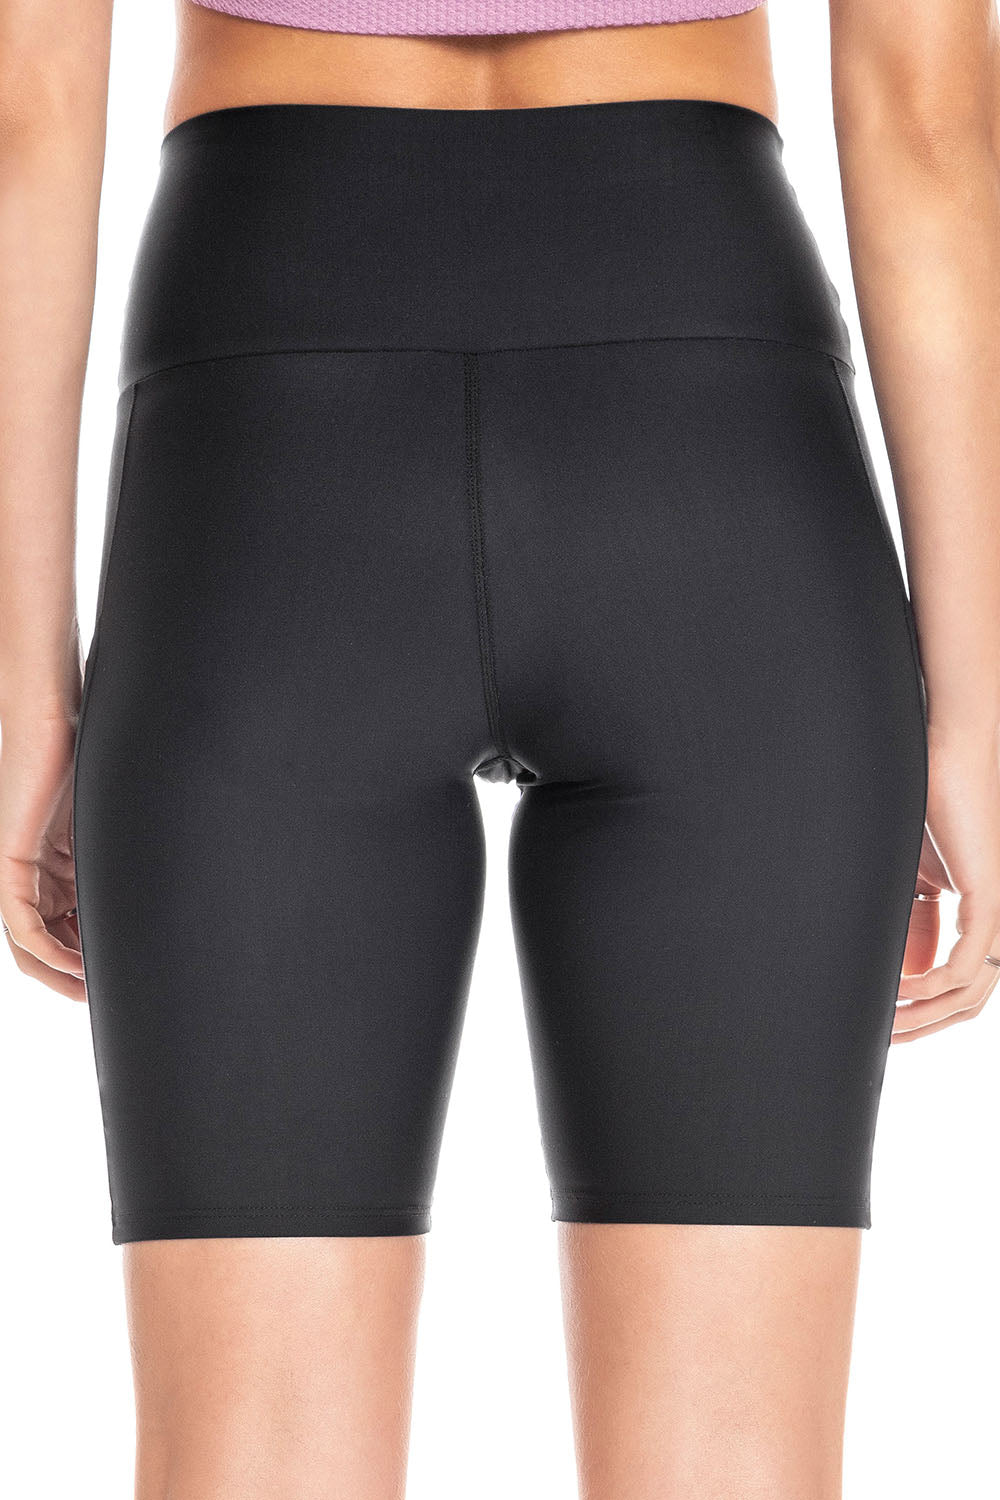 Intensify Biker Shorts 2